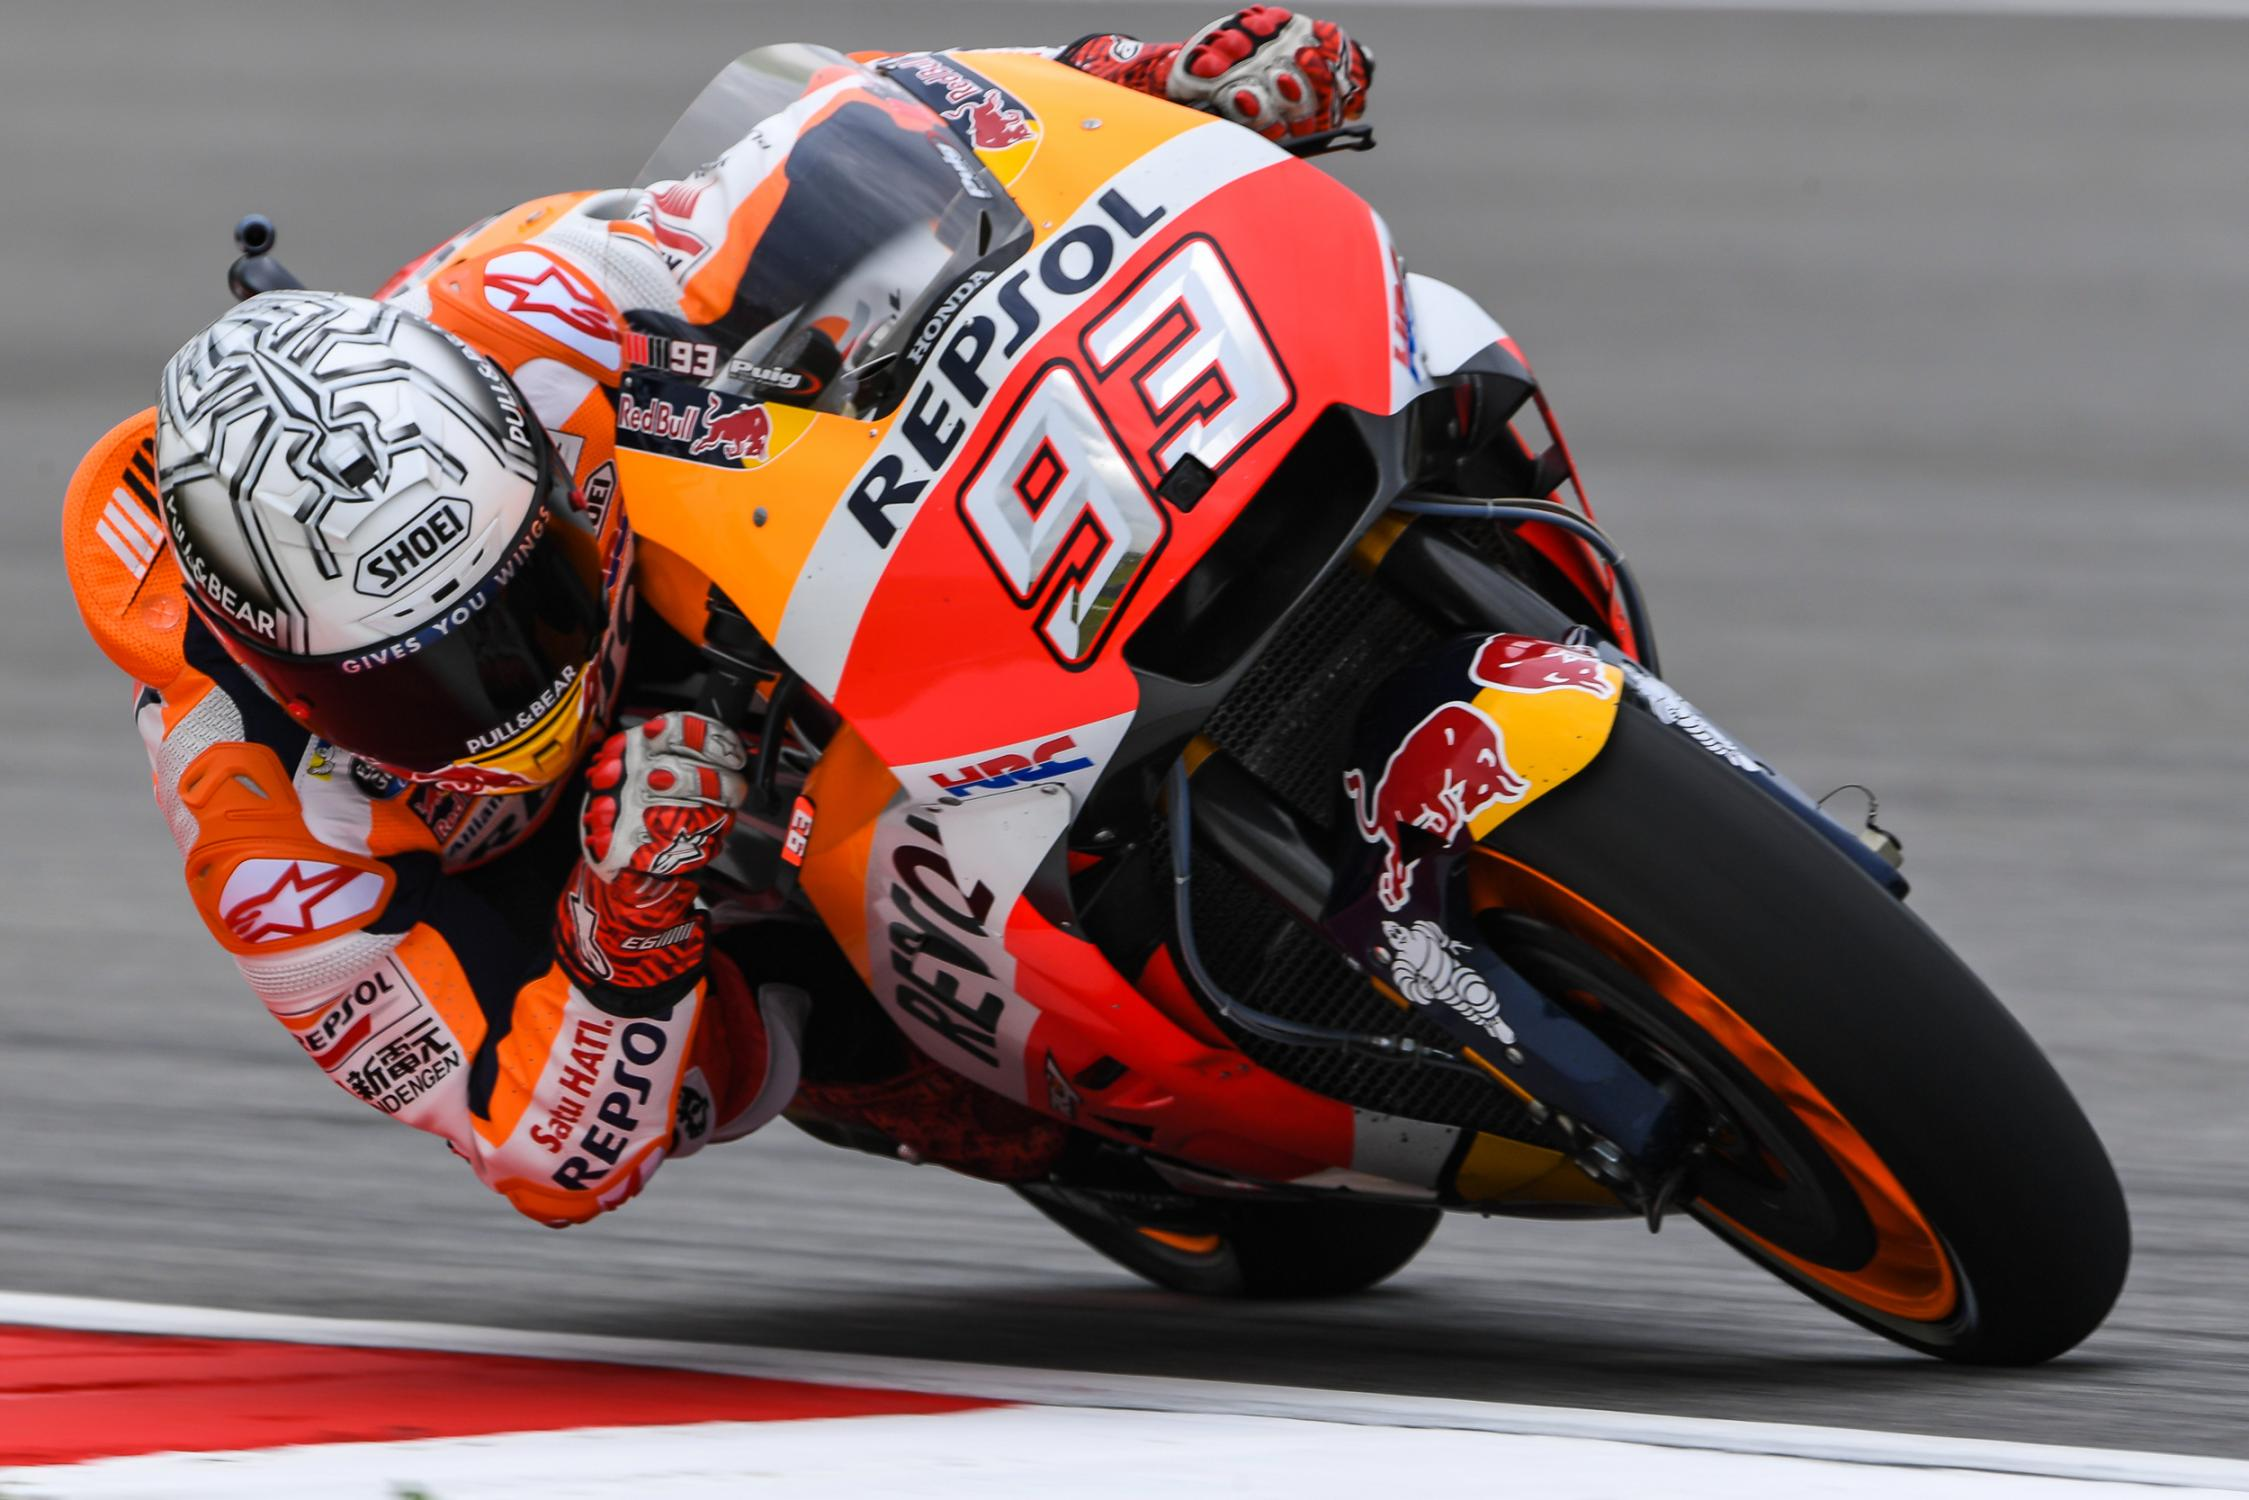 93-marc-marquez-espdsc_9543.gallery_full_top_fullscreen.jpg